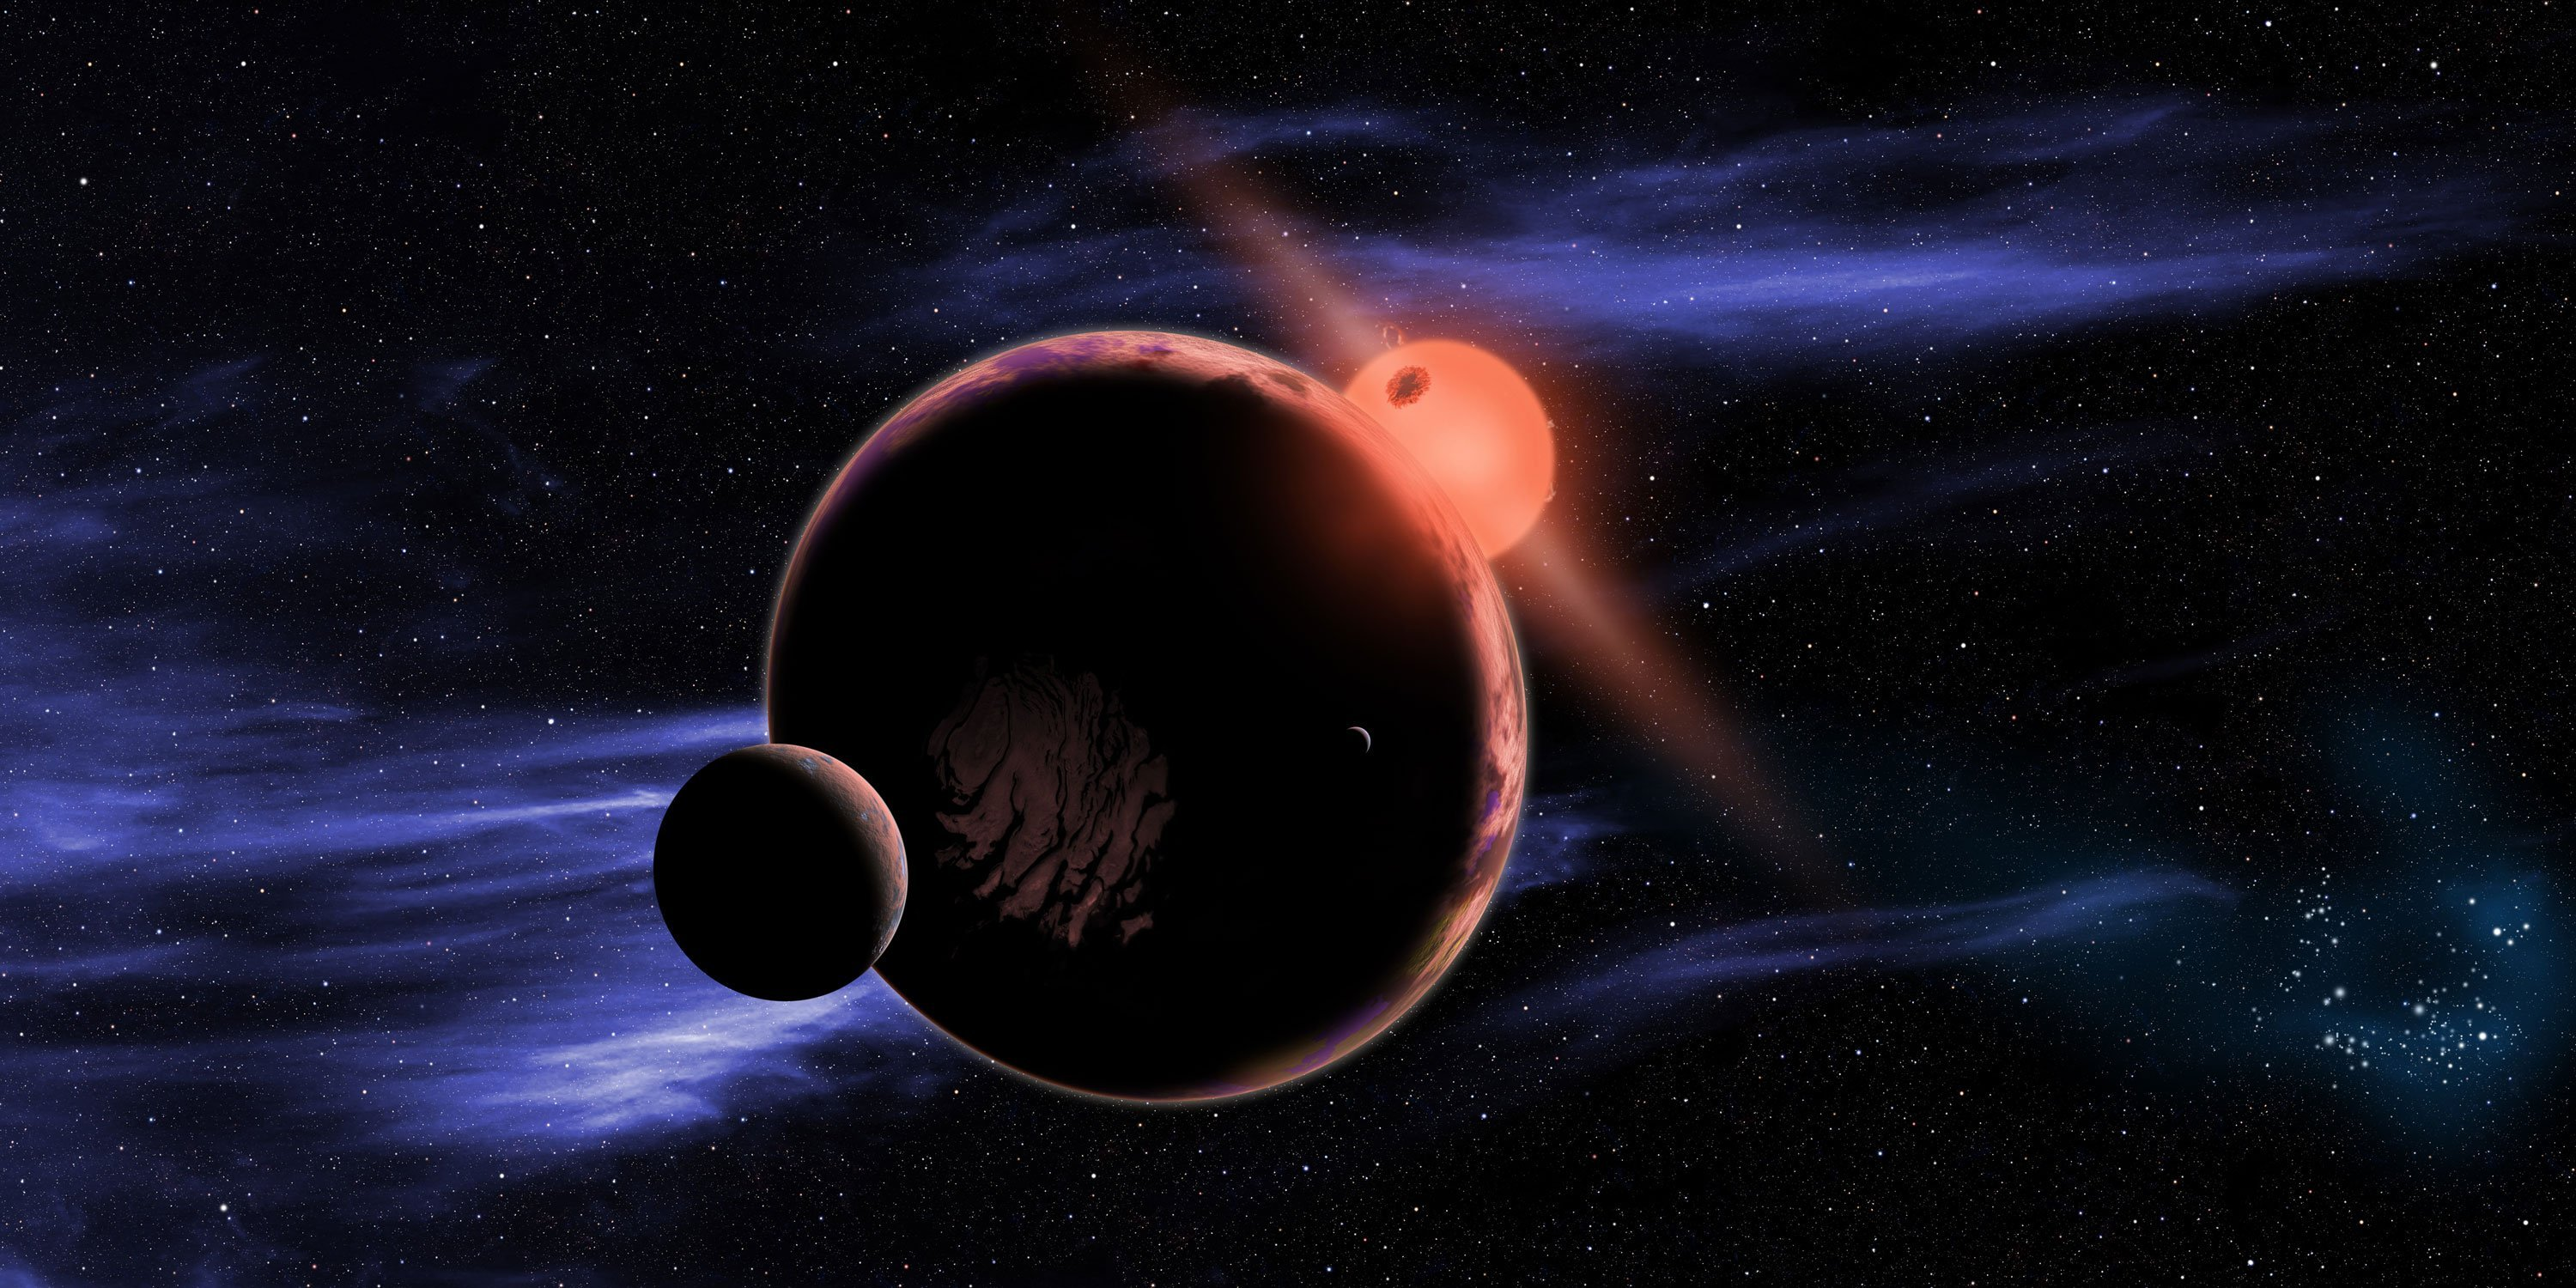 What makes a planet potentially habitable